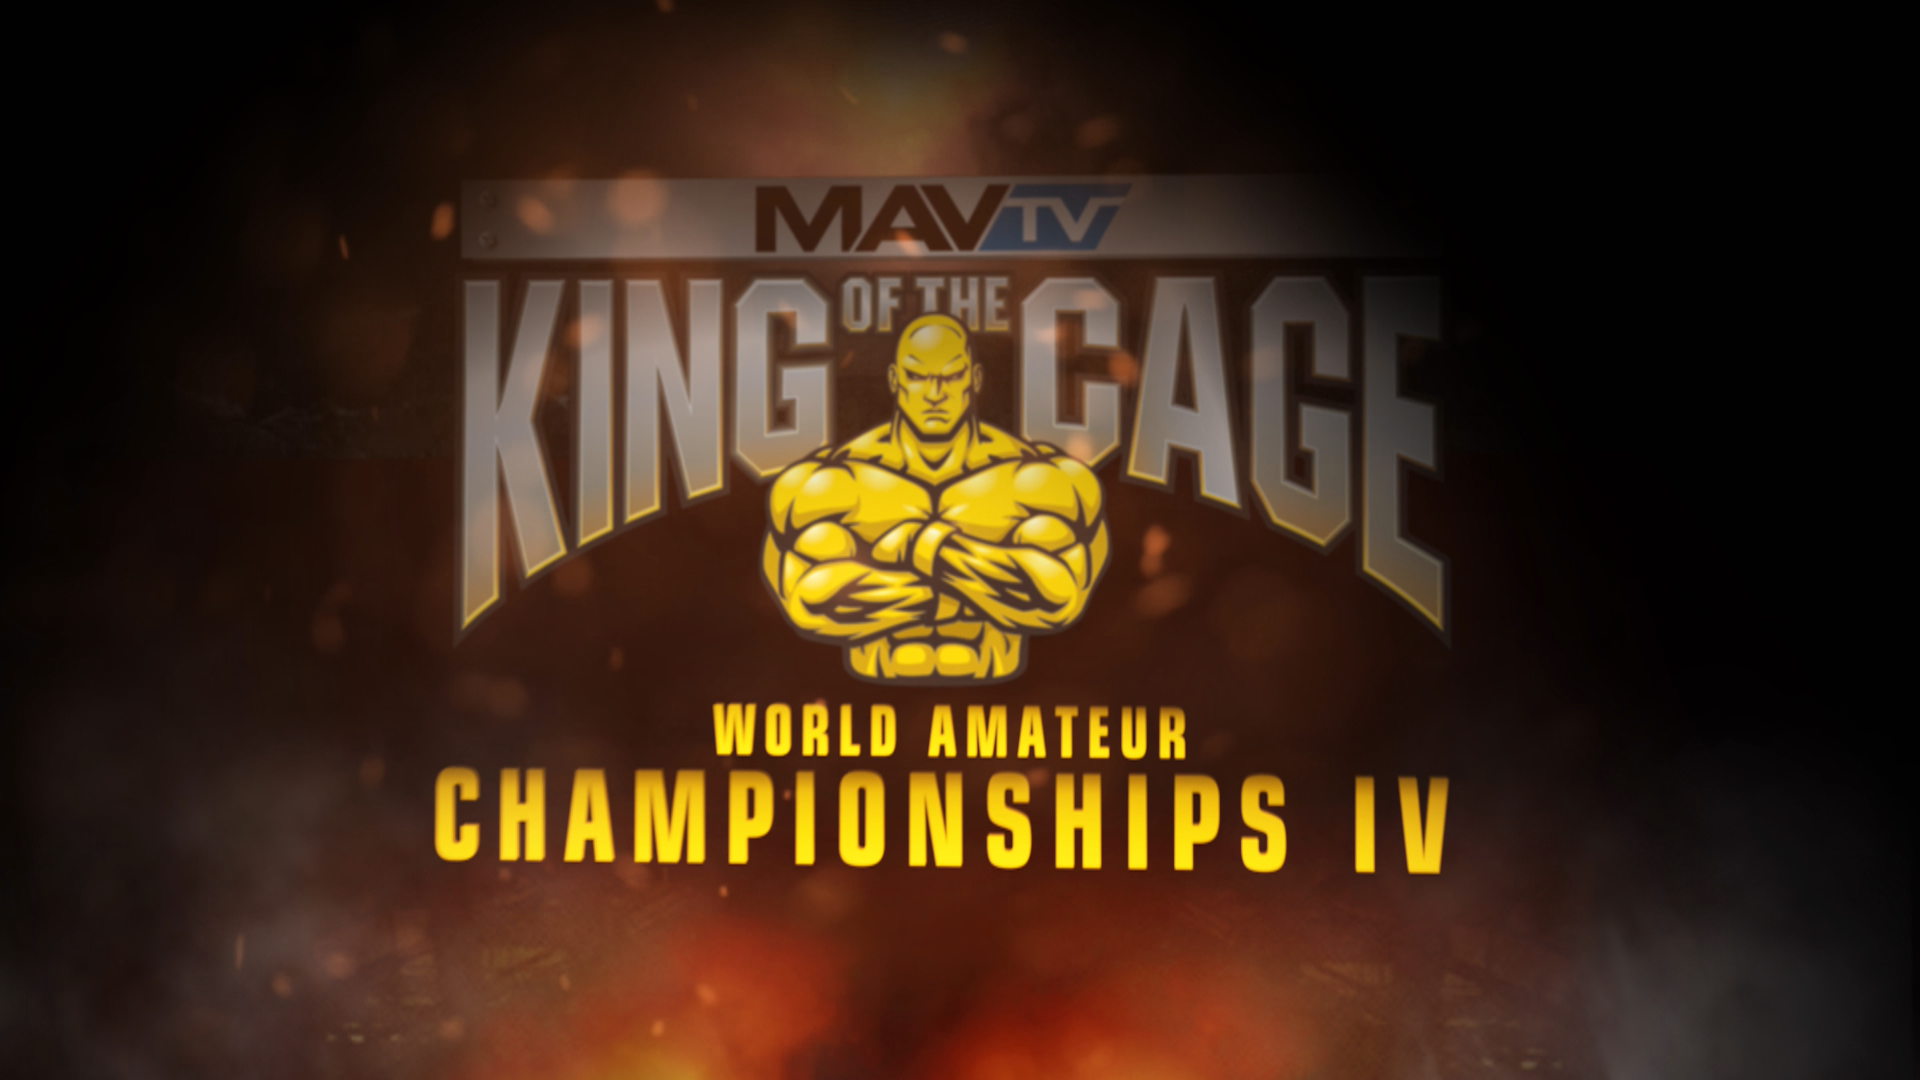 World Amateur Championships 4 | King of the Cage